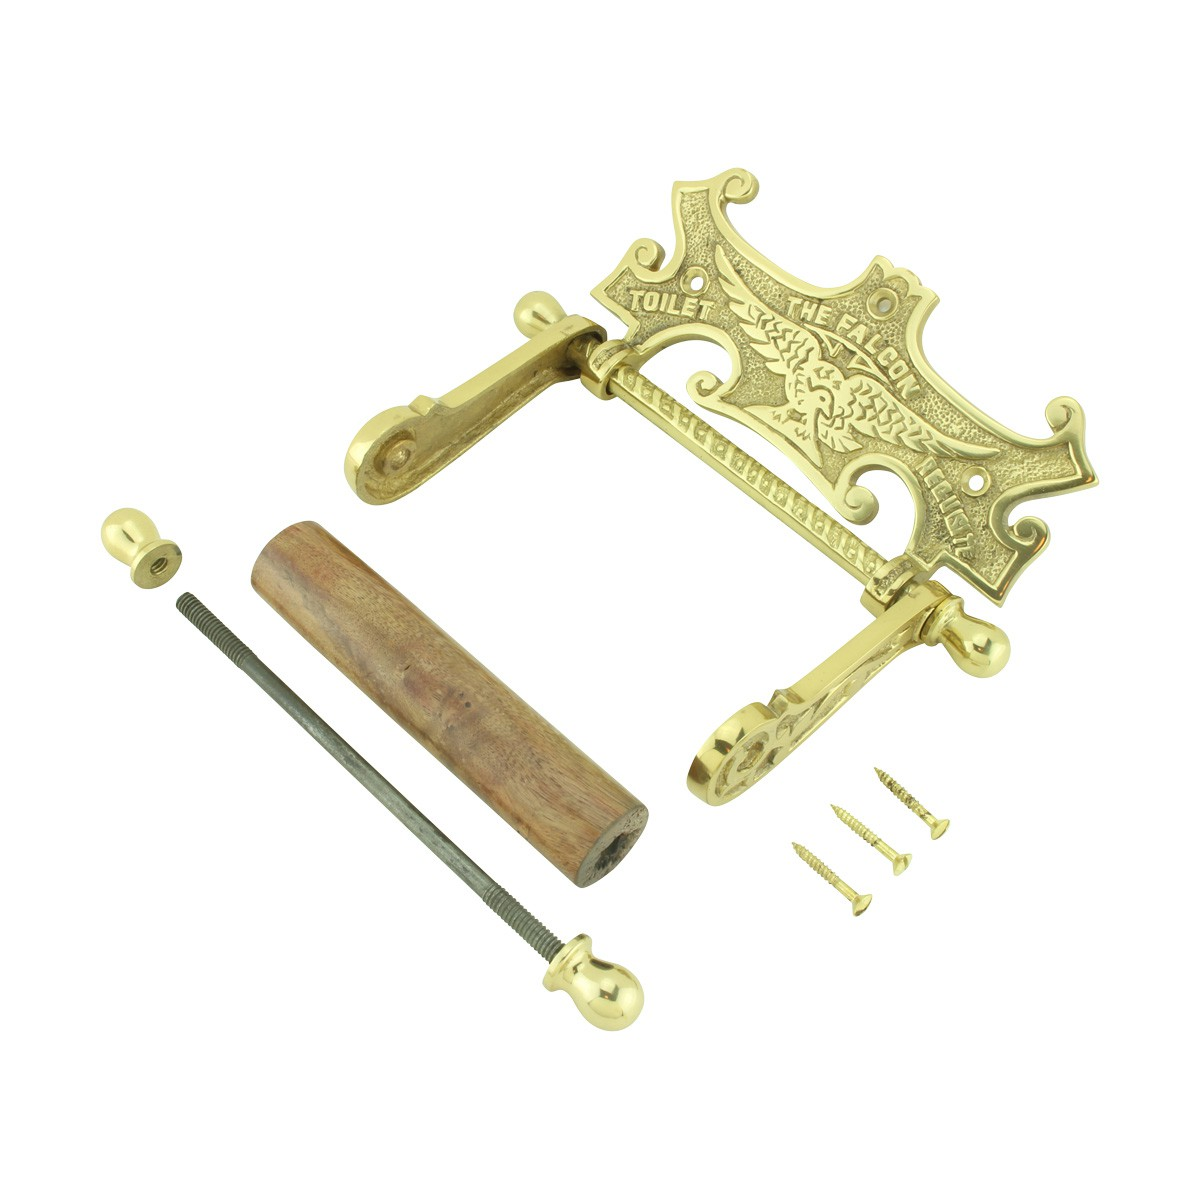 Traditional Brass Falcon Tissue Holder for Bathroom toilet paper holder stand toilet paper holder free standing Toilet Paper Holder